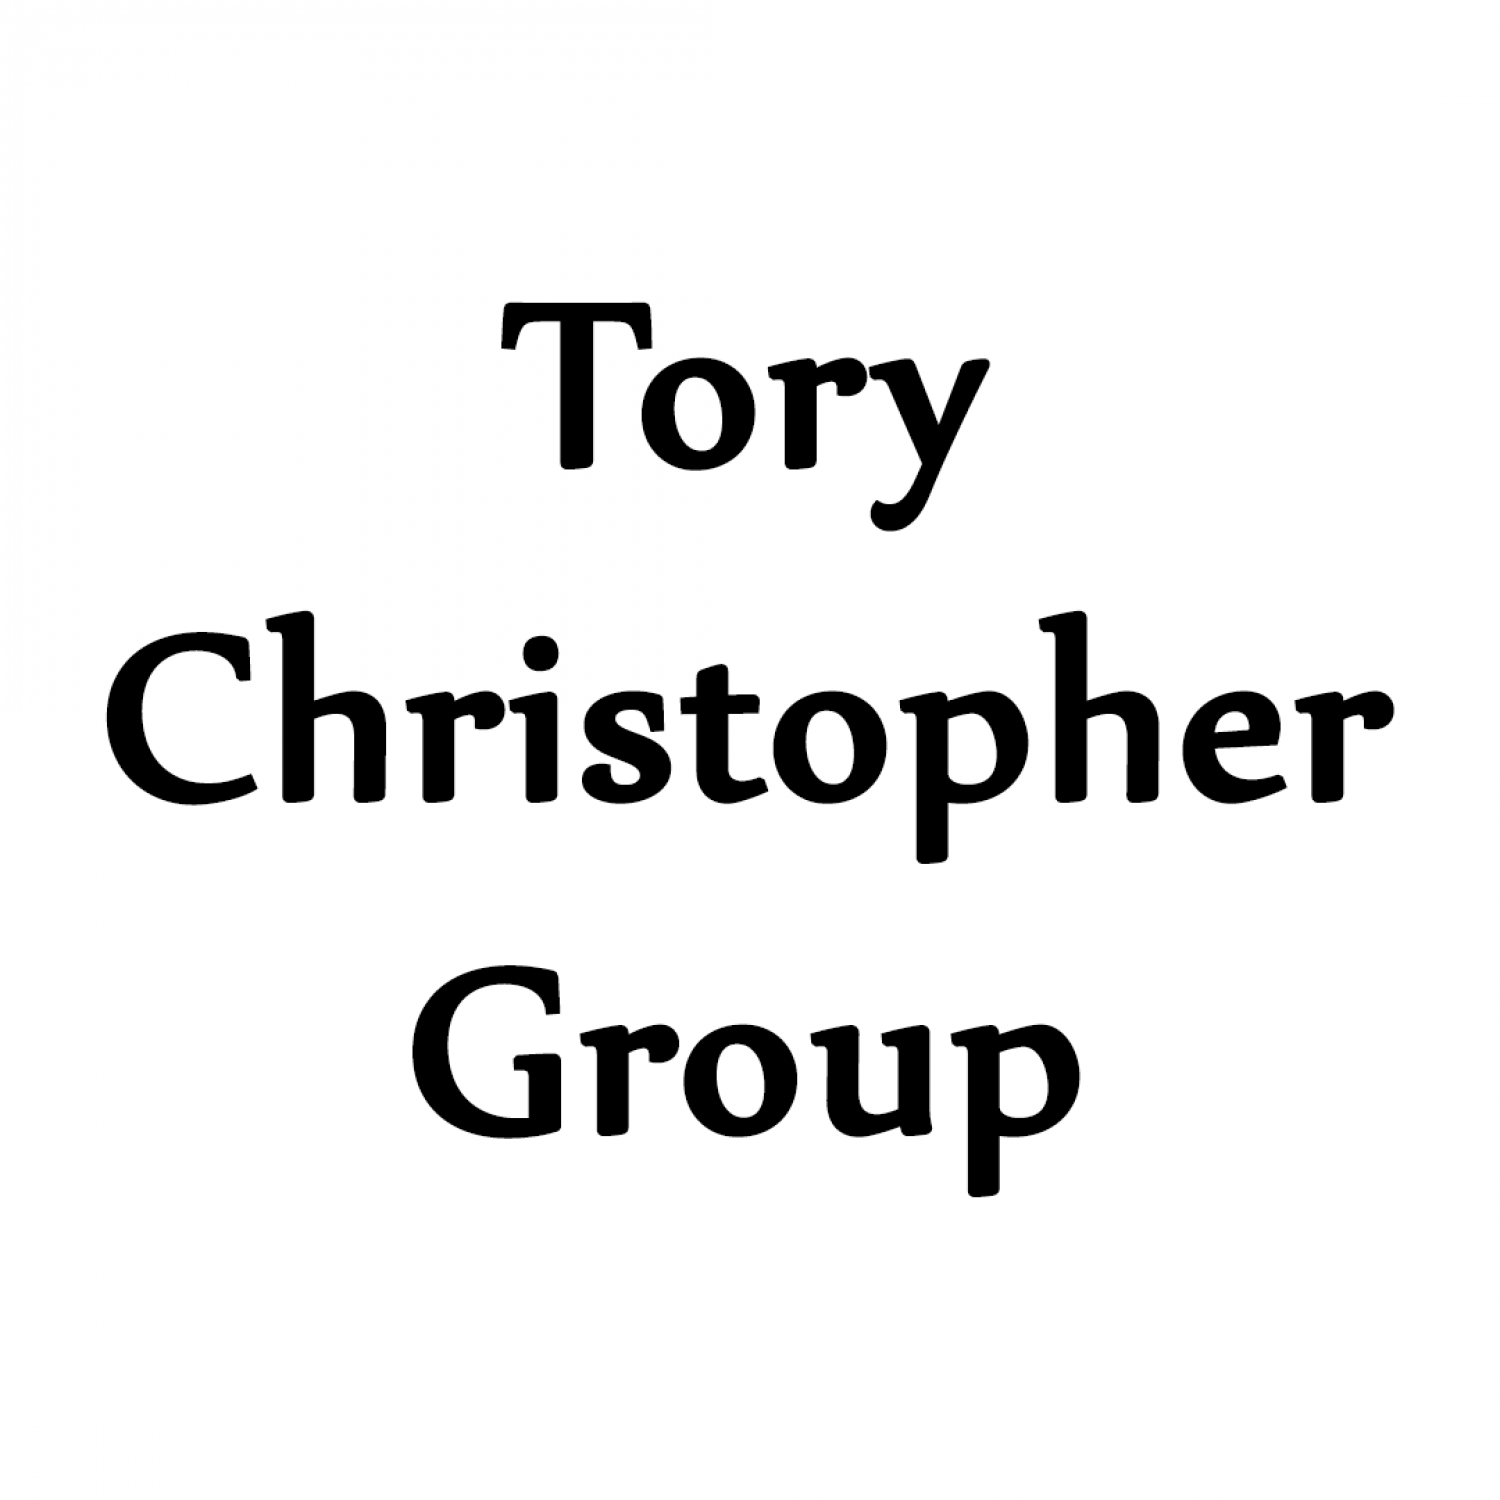 Tory Christopher Group Banner